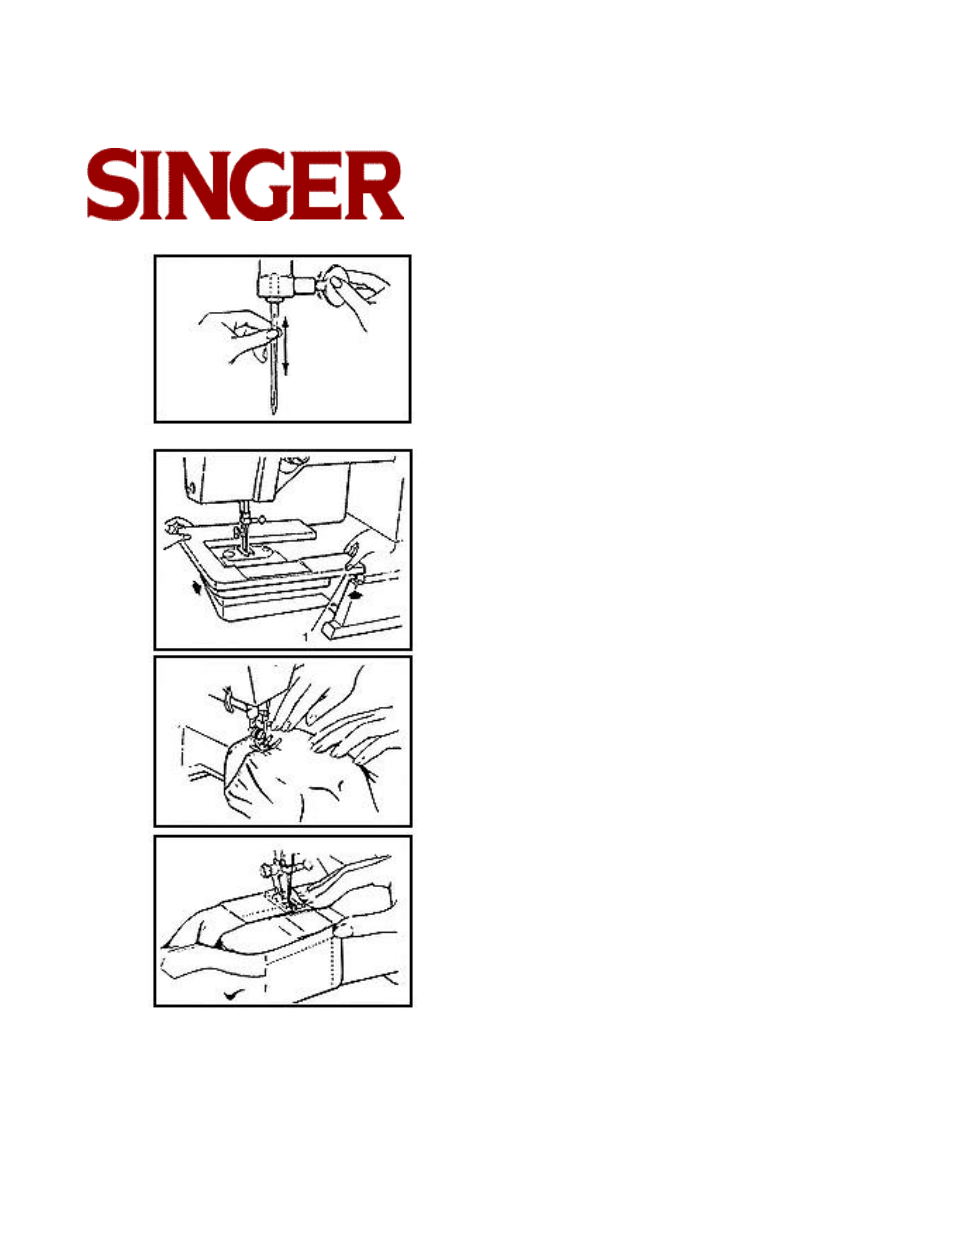 singer sewing machine 621b user manual